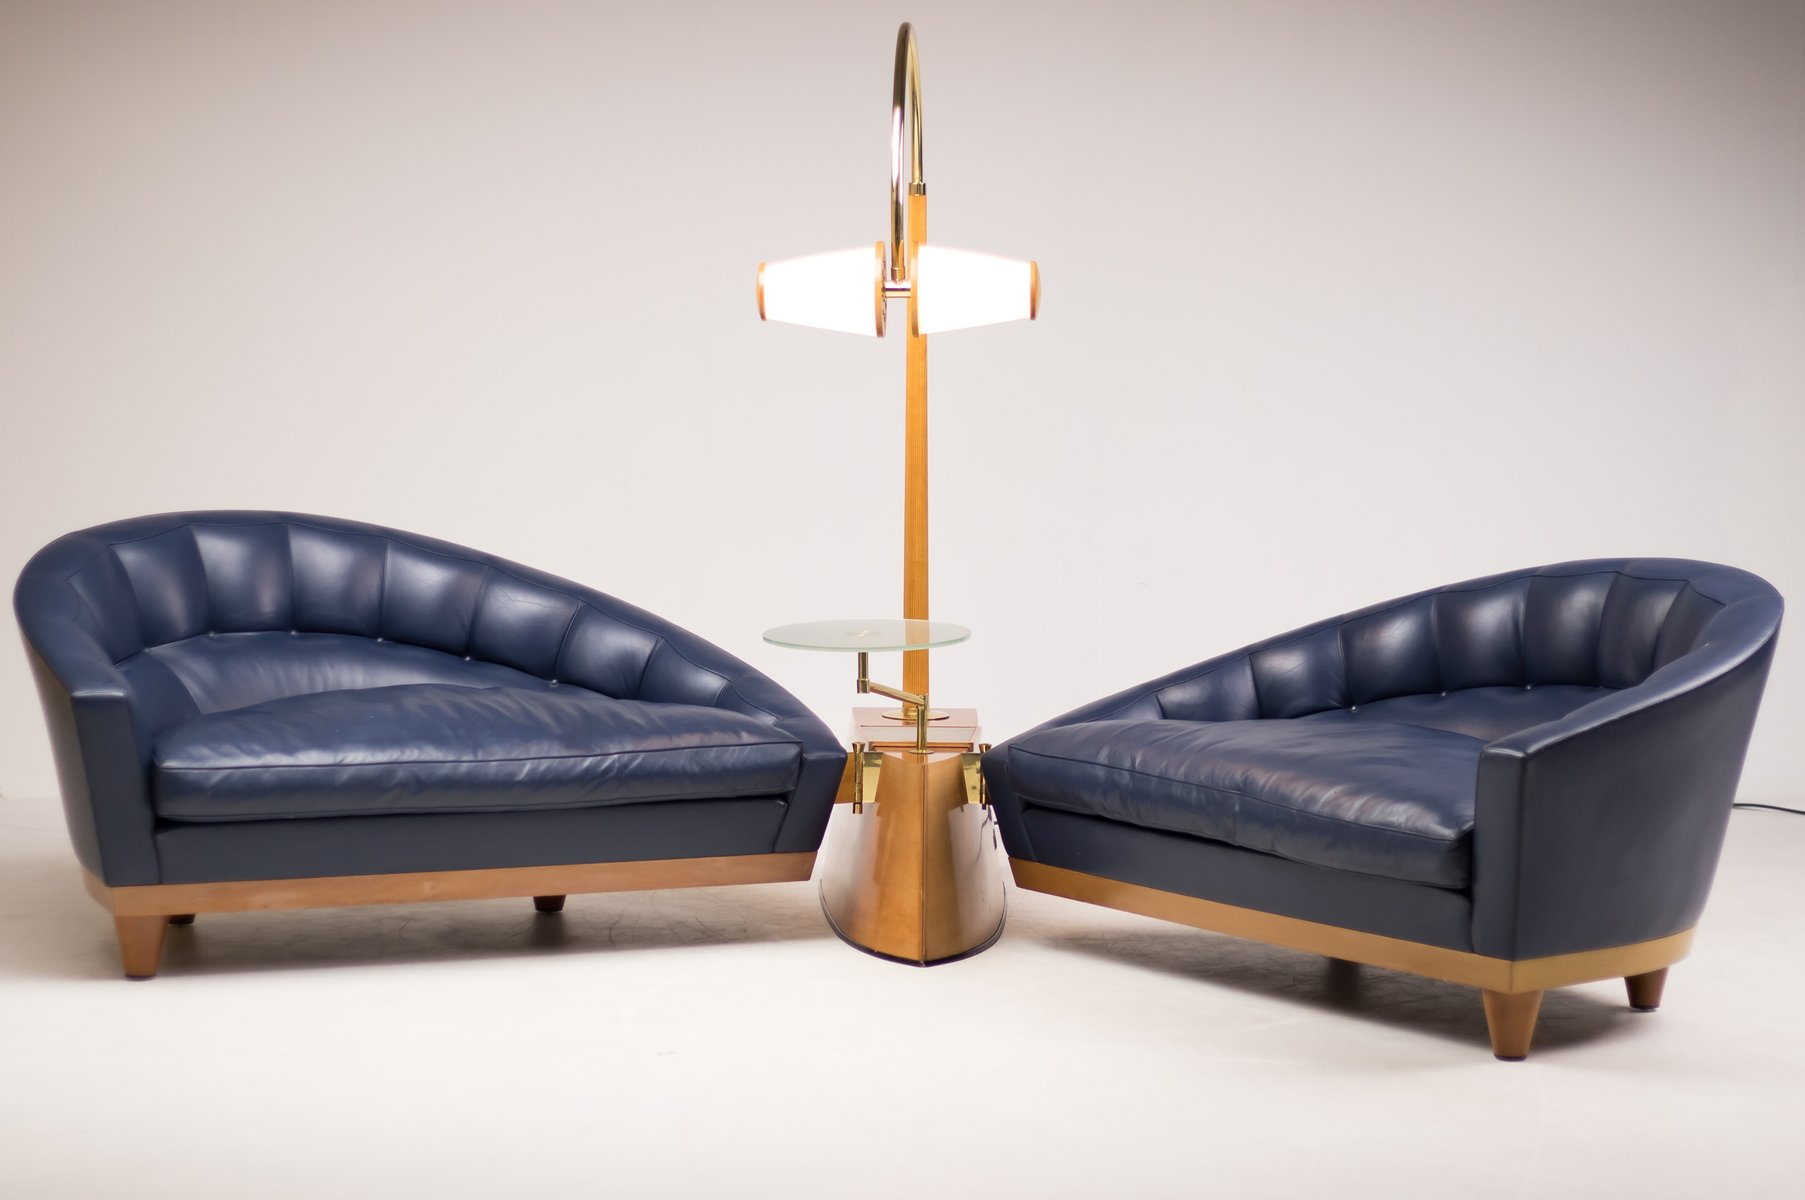 Vintage Blue Leather Aladino Living Room Set By Massimo Scolari For Giorgetti The Exceptional